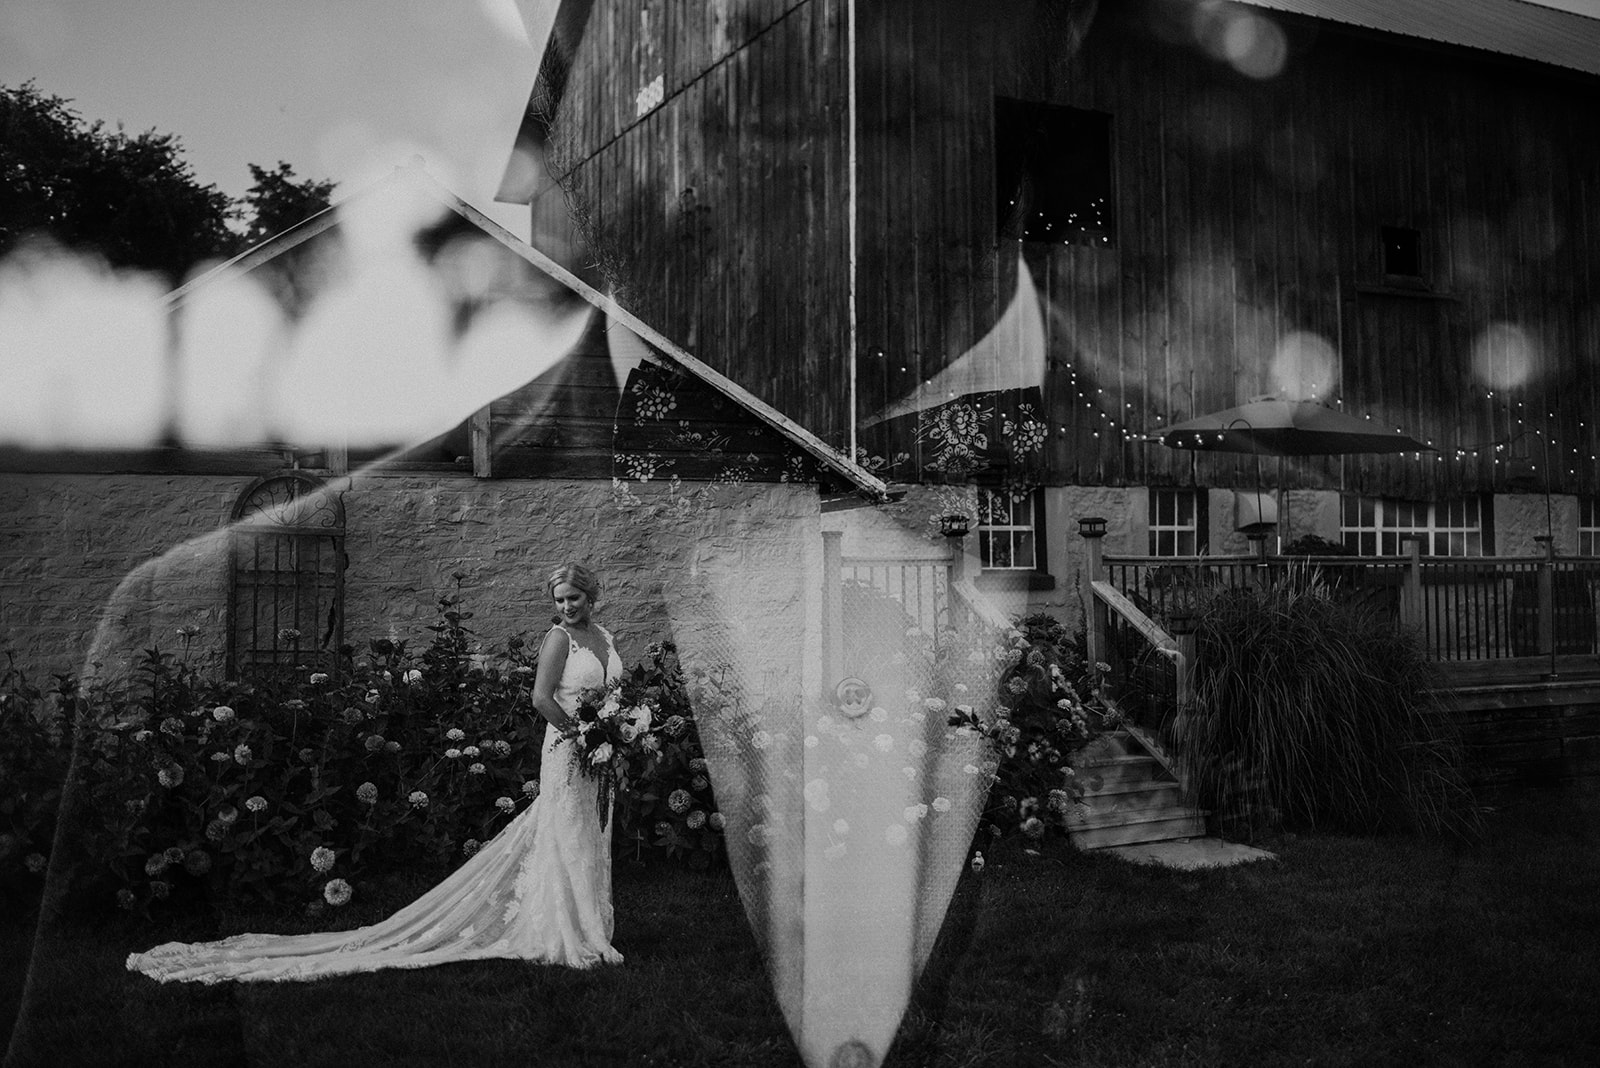 overthevineswisconsinwedding_0989.jpg